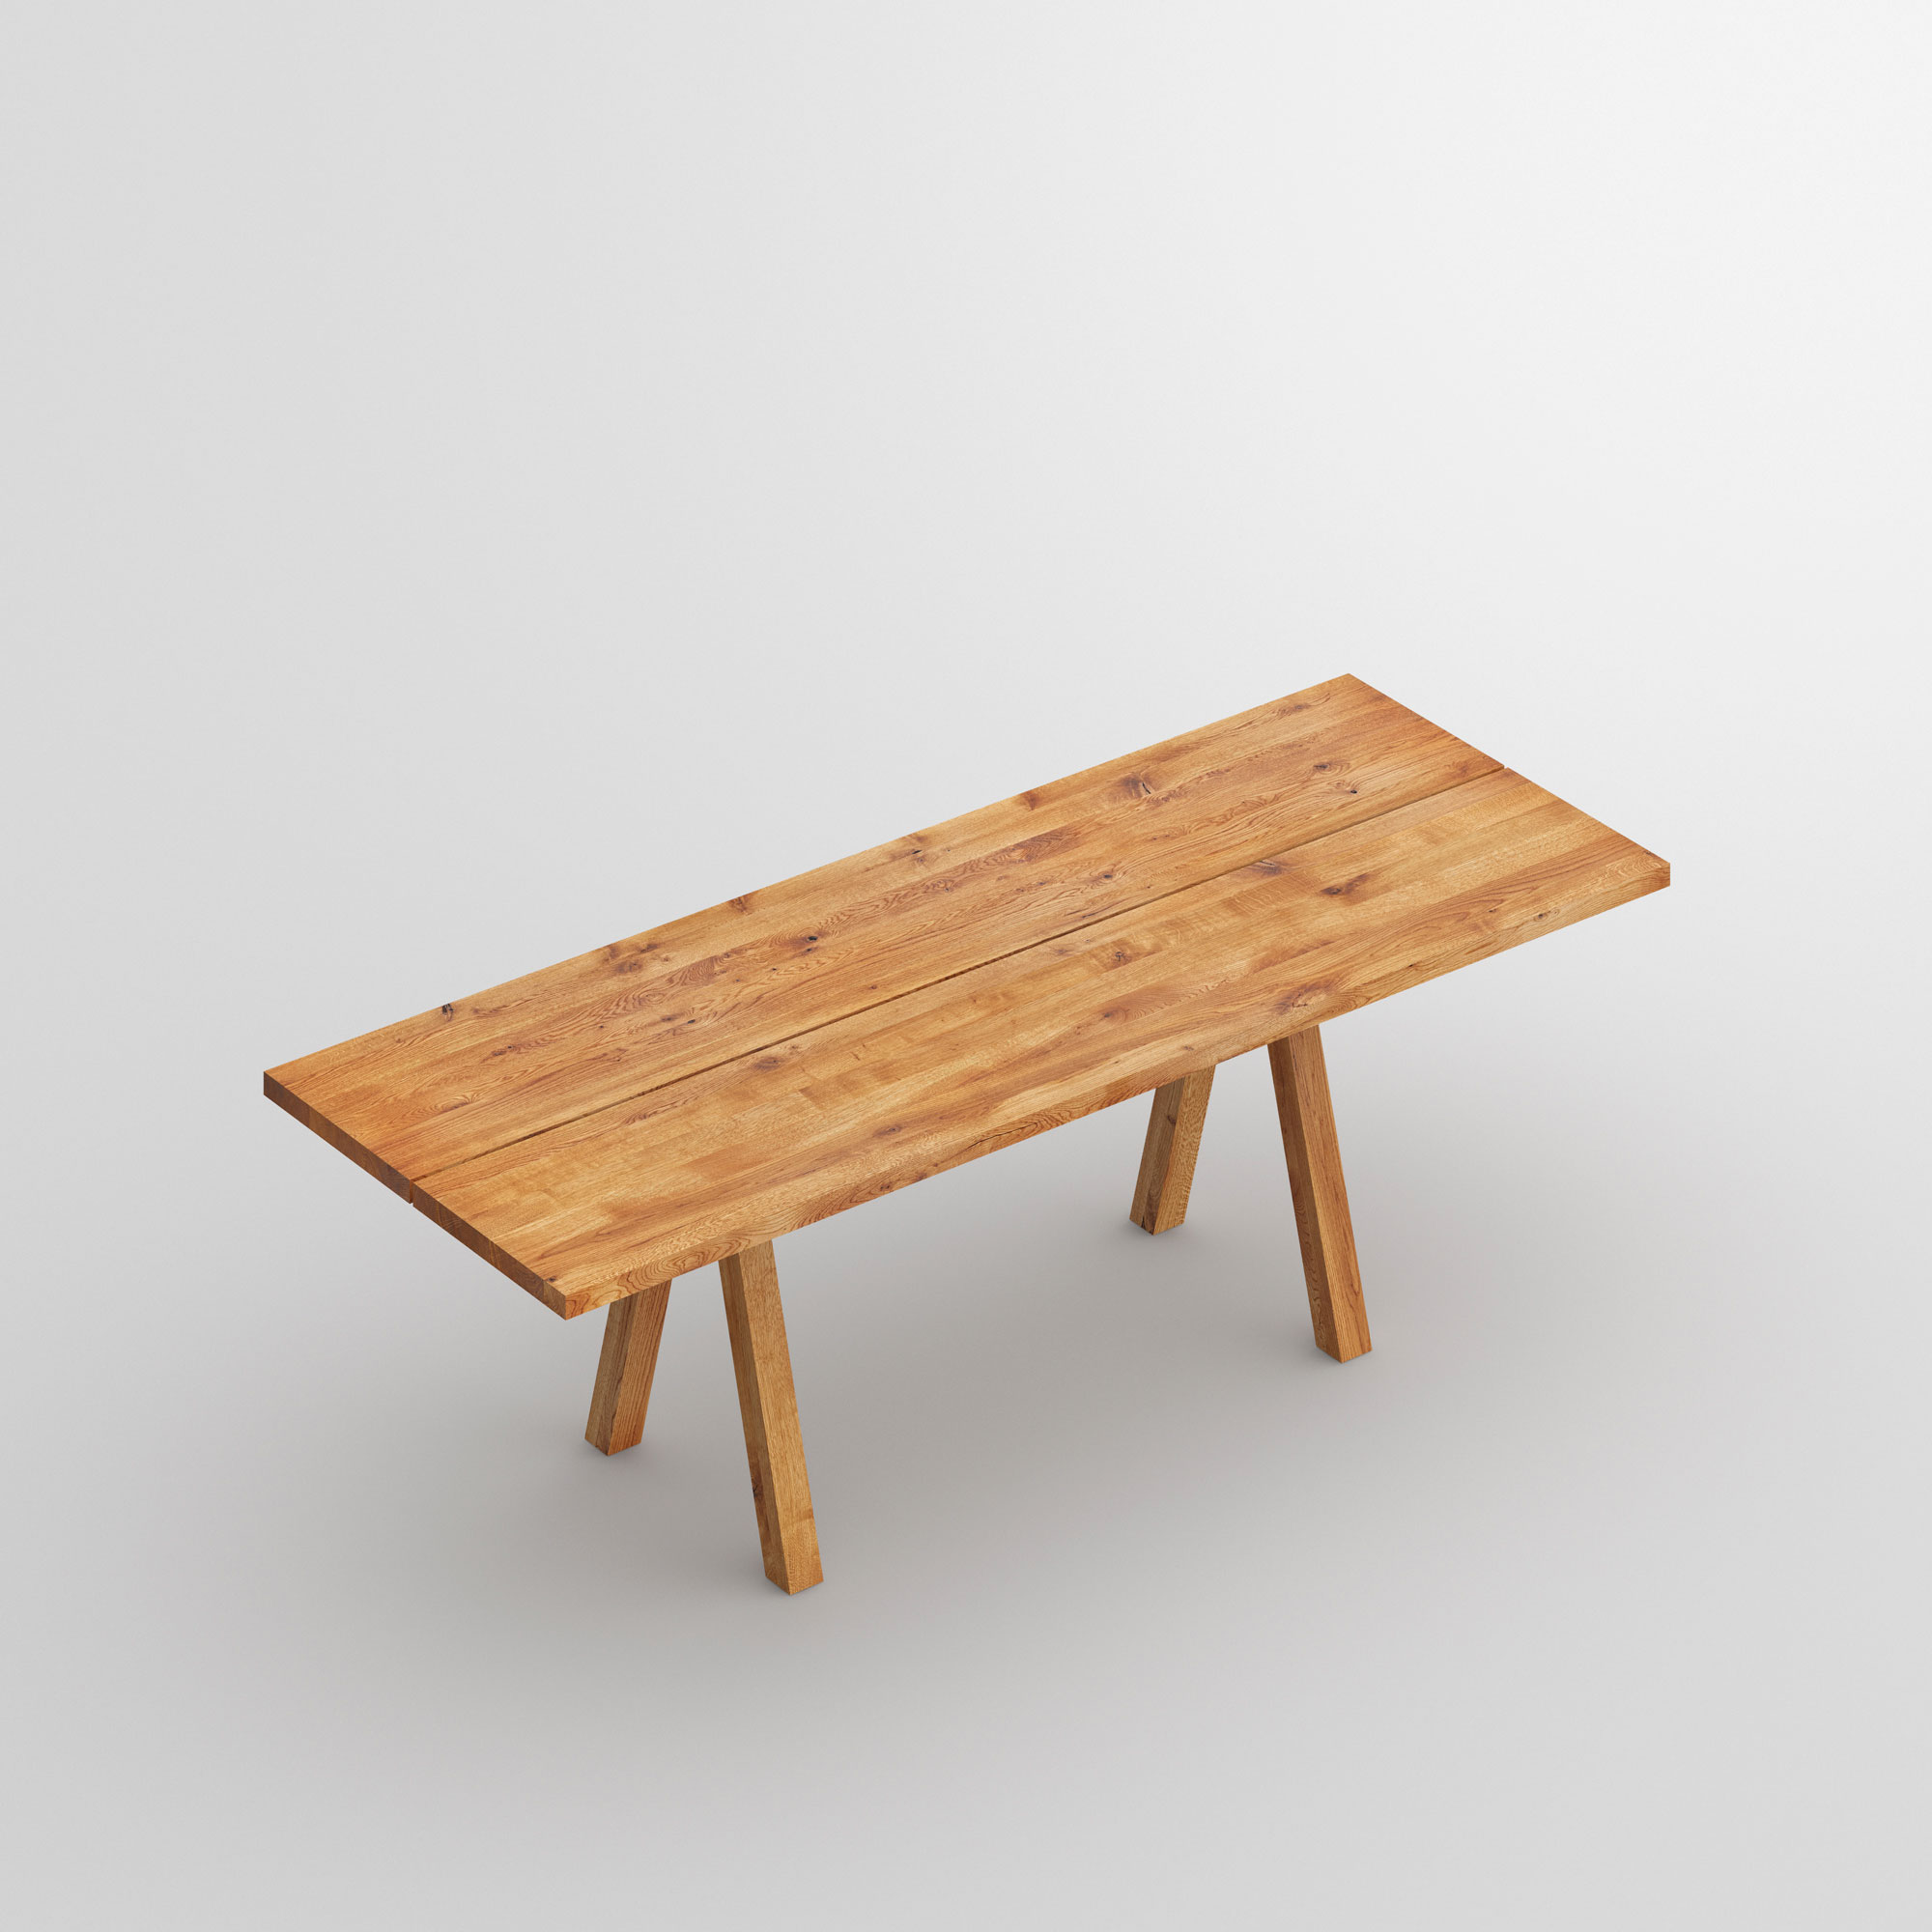 Solid Wood Table PAPILIO BASIC cam1 custom made in solid wood by vitamin design